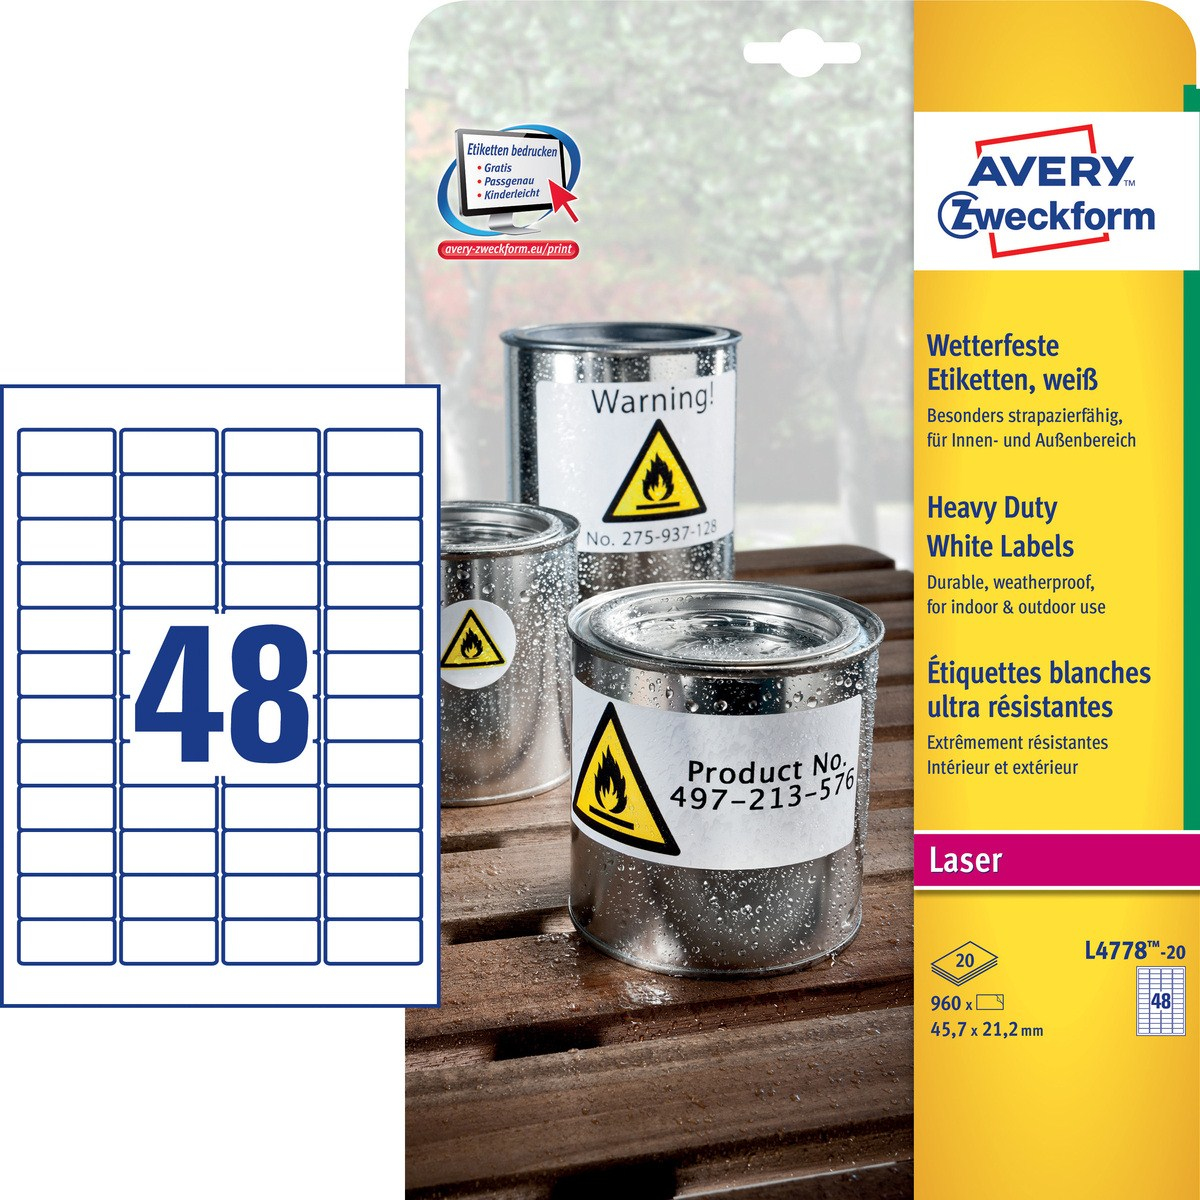 L4778-20 avery Avery Heavy Duty Label 45.7x21.2mm Wht L4778-20 (960 Labels) - AD01